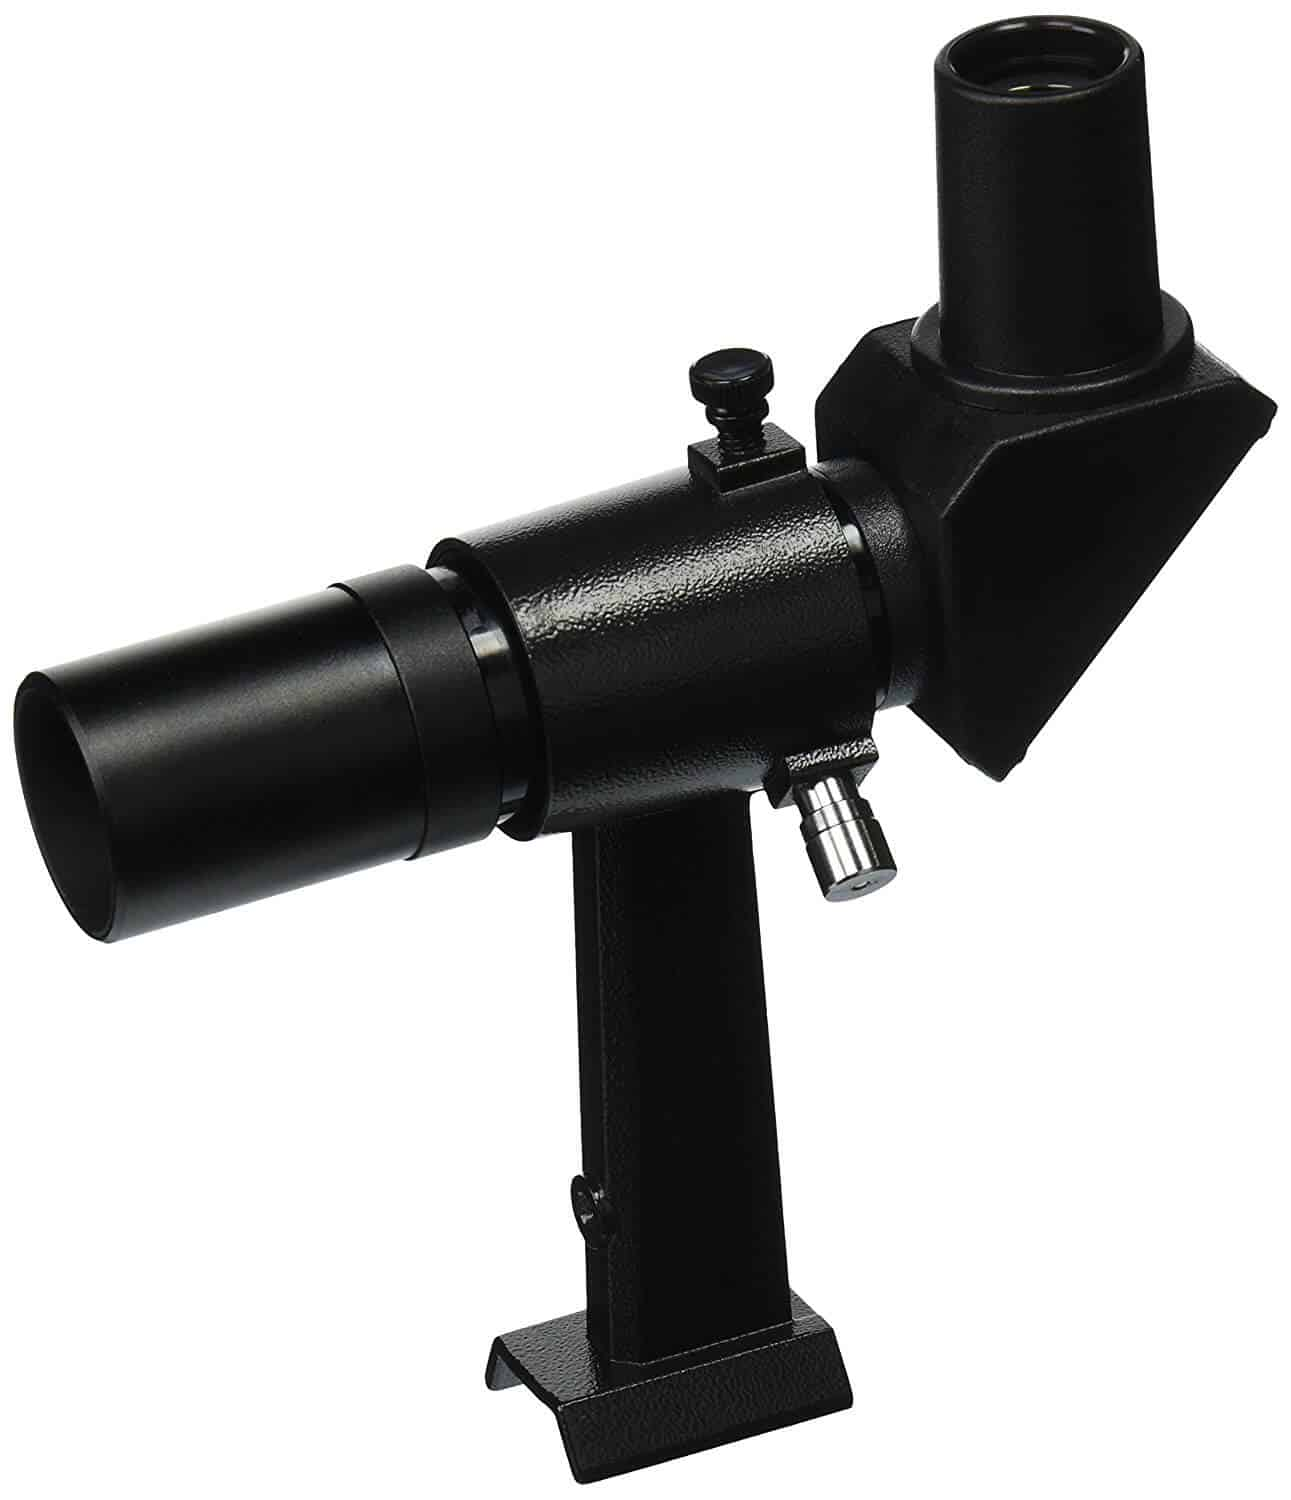 A right angled finderscope